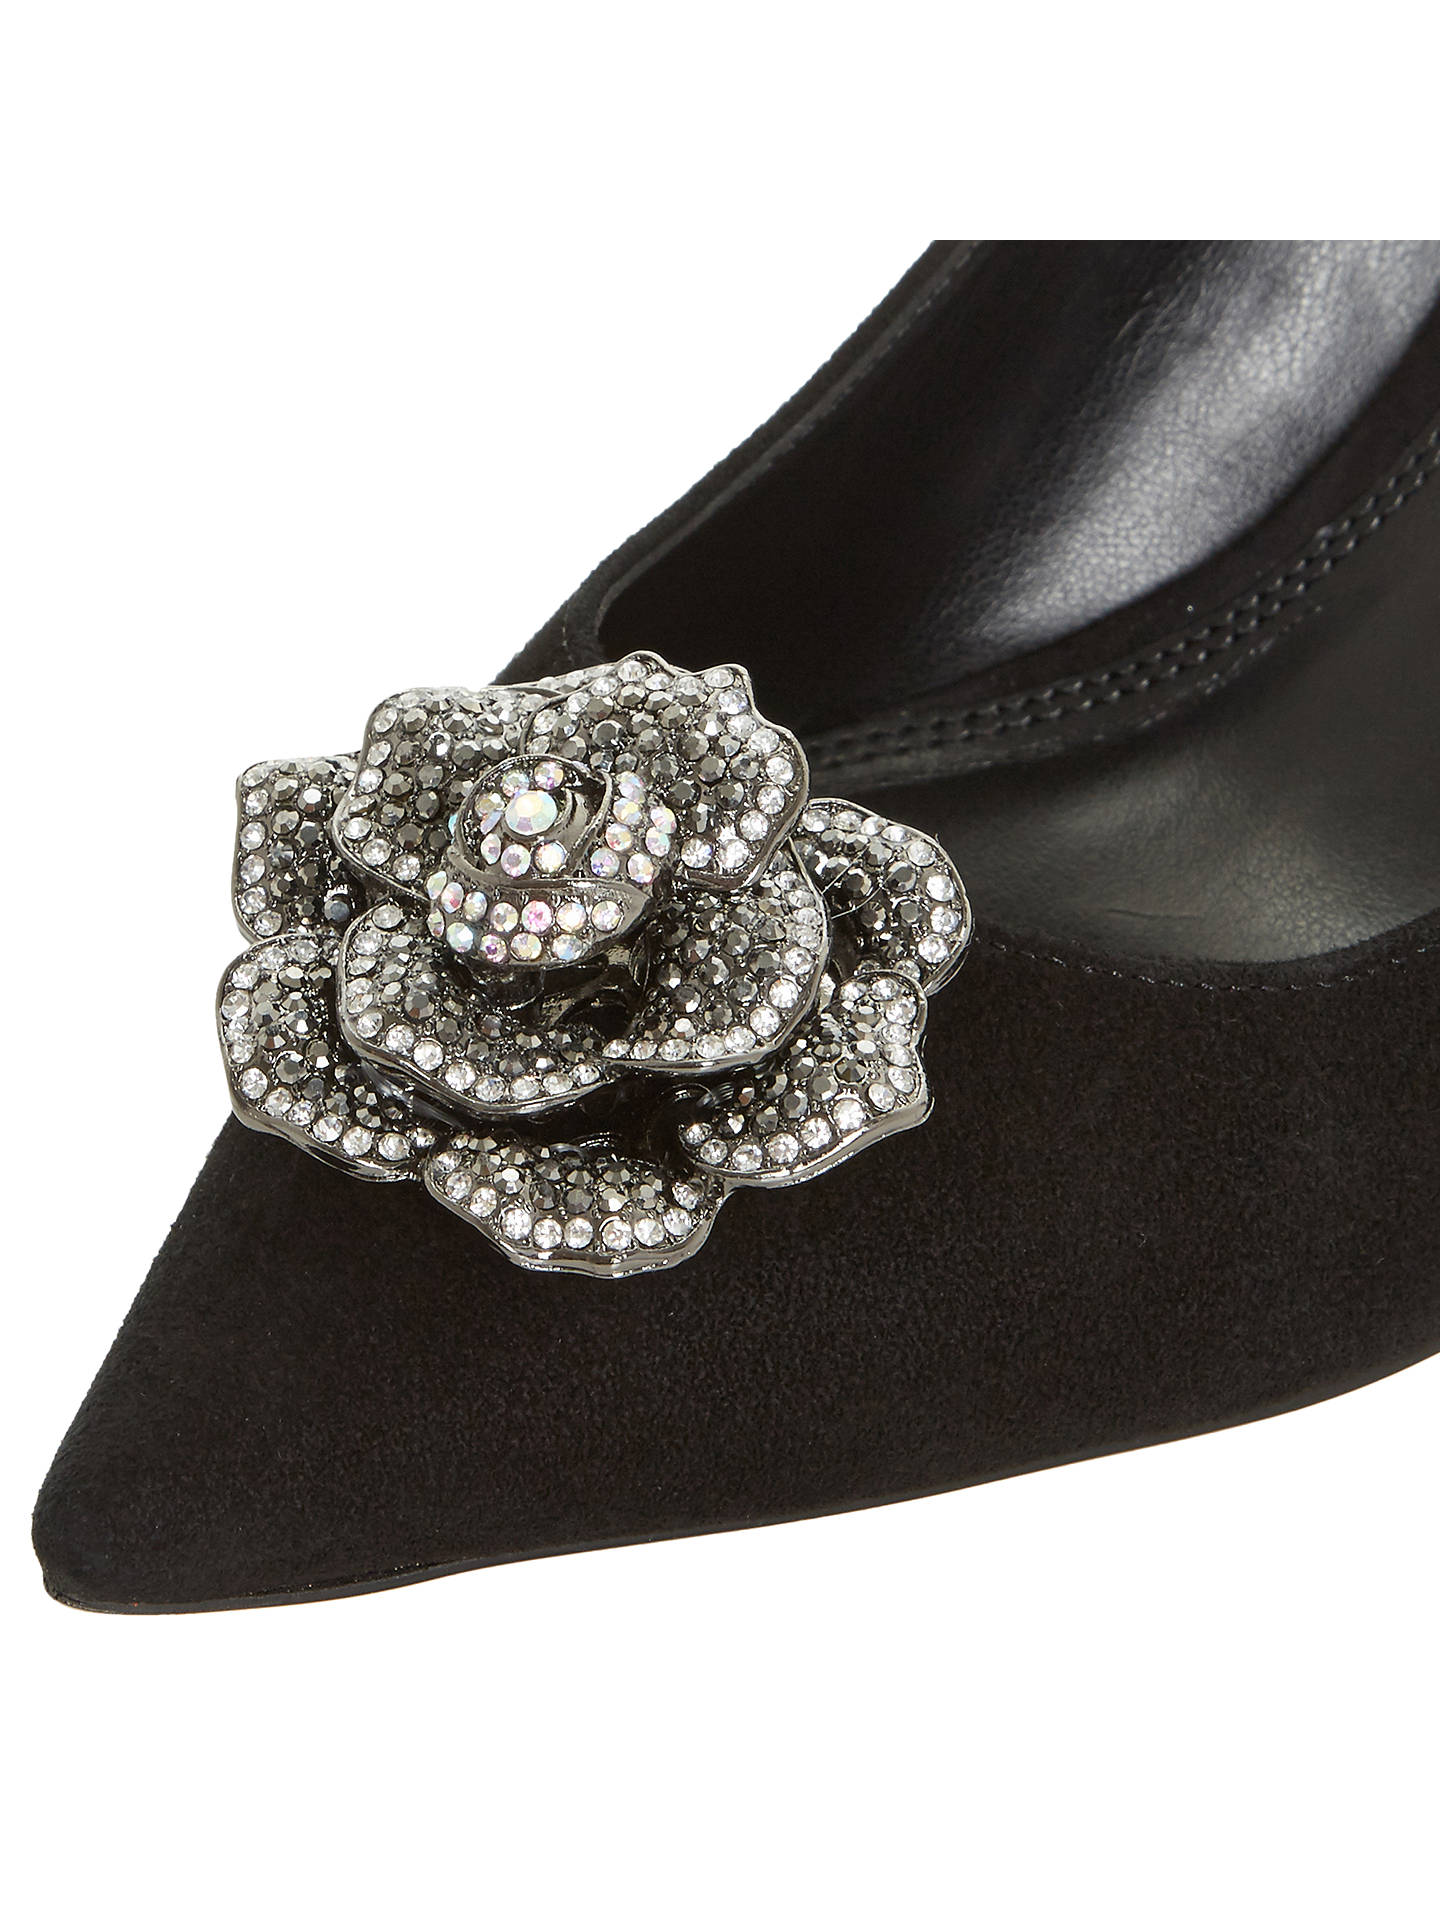 BuyDune Bergamot Jewelled Flower Court Shoes, Black, 3 Online at johnlewis.com